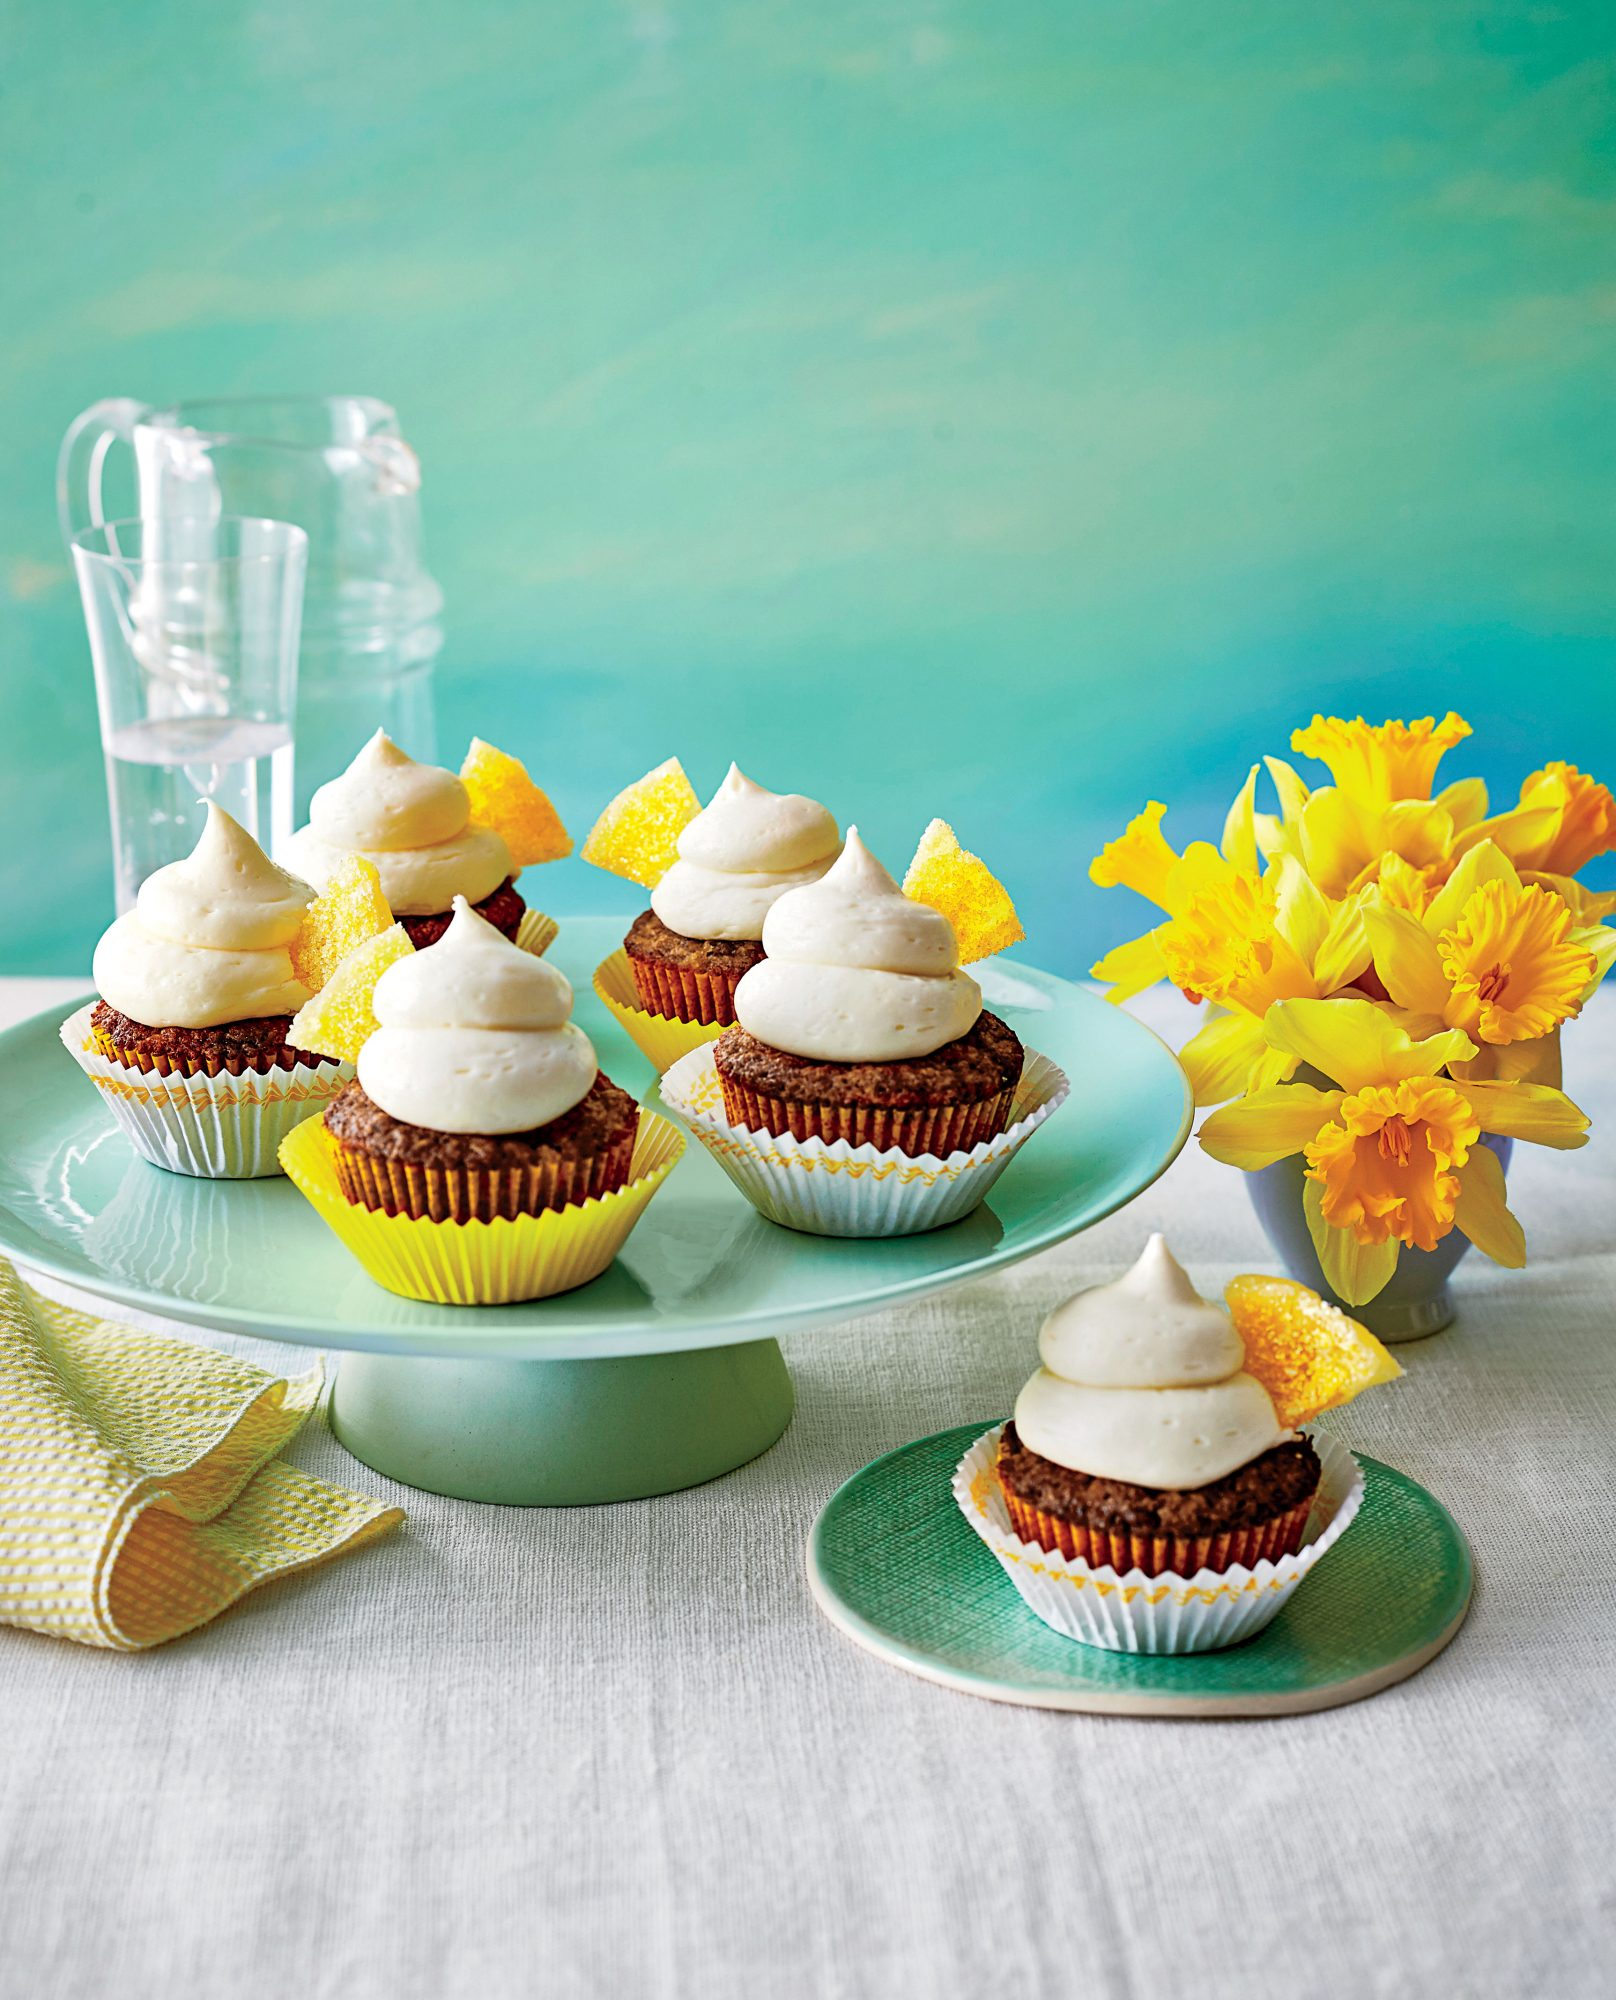 Hummingbird Cupcakes with Candied Pineapple Wedges Recipe